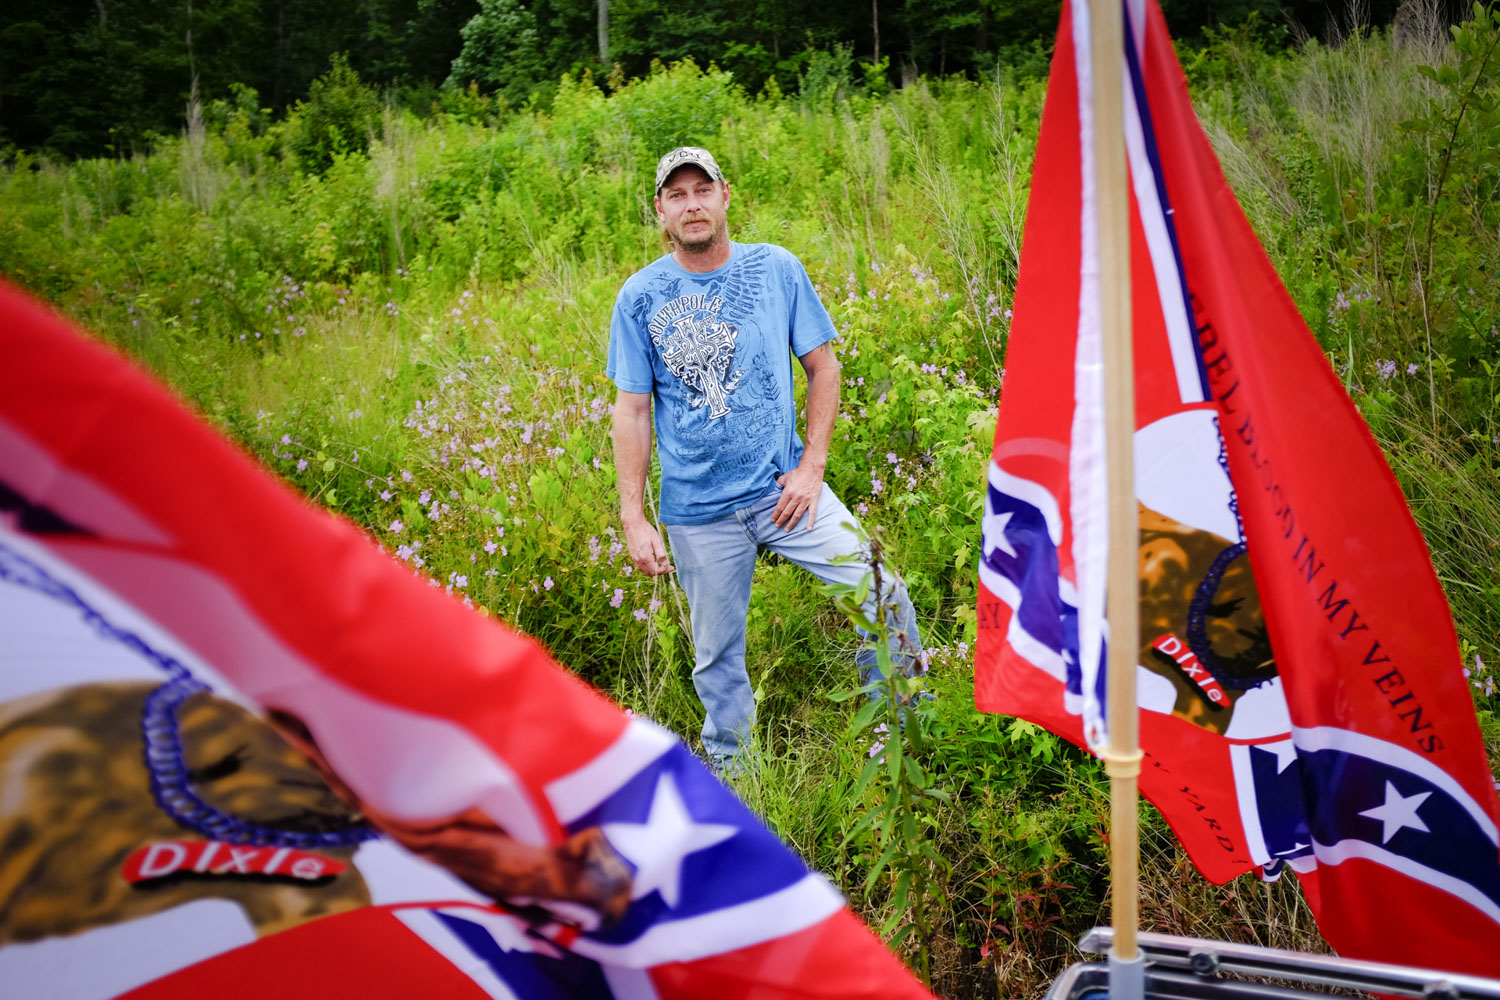 Steve Amos poses for a portrait with flags on the back of his 1983 El Camino vehicle before the start of the Flag Run 2015 in Matoaca, Va., on Saturday, July 11, 2015. Scott P. Yates/Progress-Index Photos